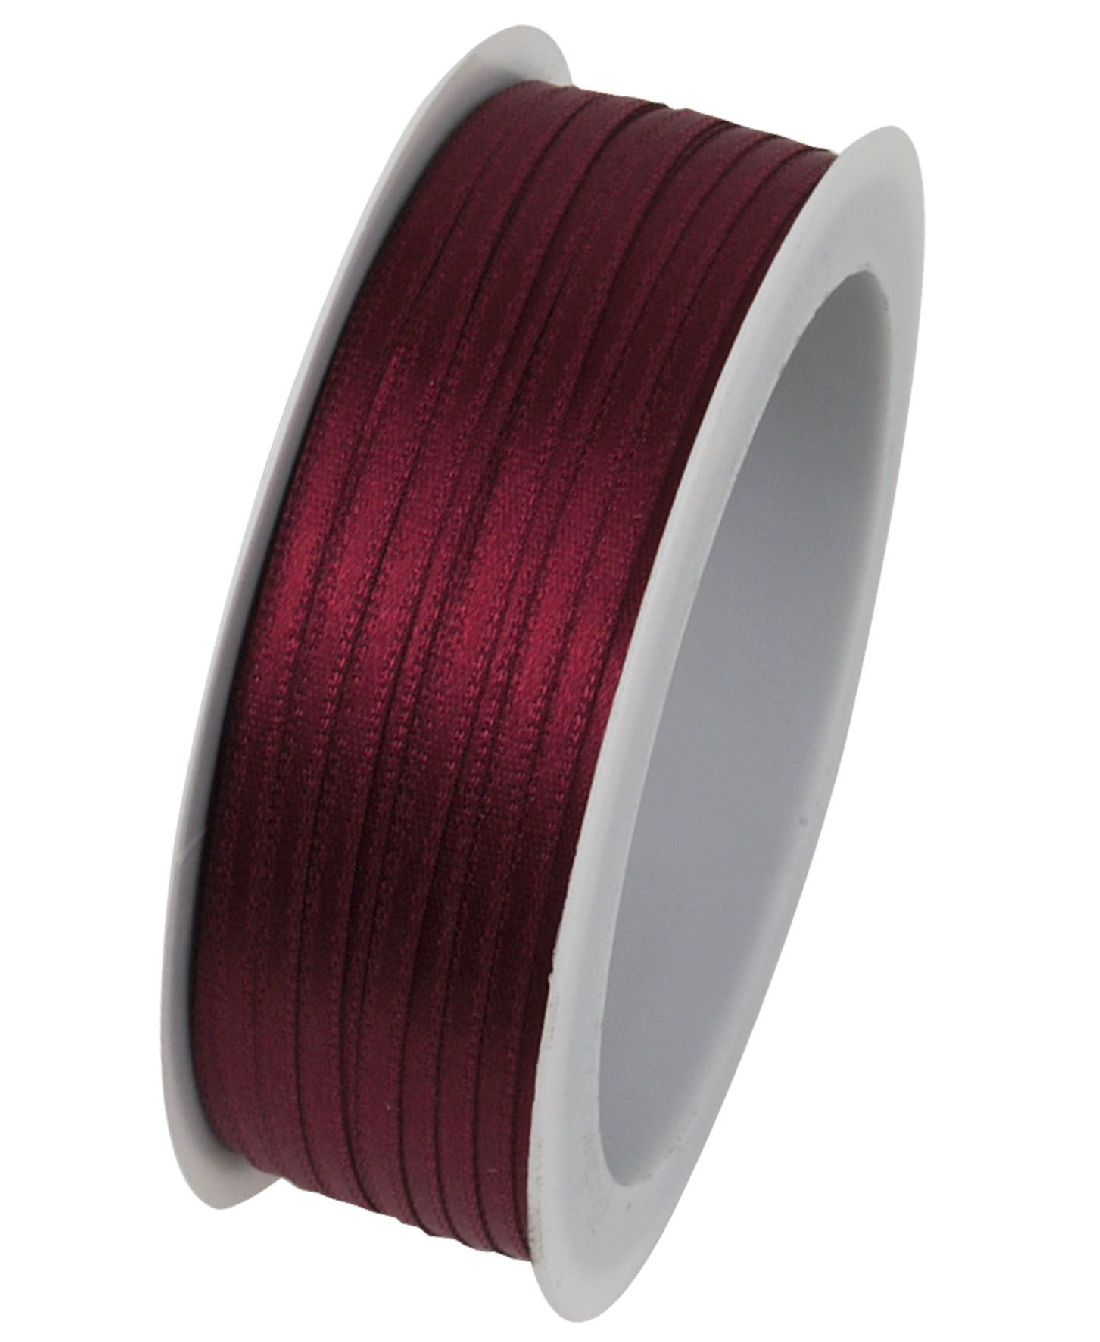 Doppelsatin BORDEAUX 26 3mm 50m